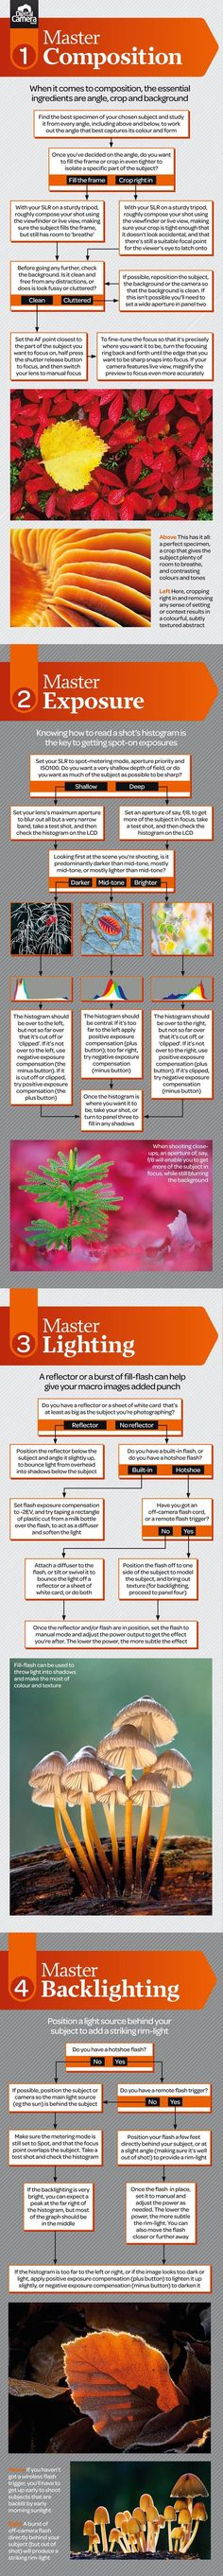 Free macro photography cheat sheet: drag and drop to save to your desktop